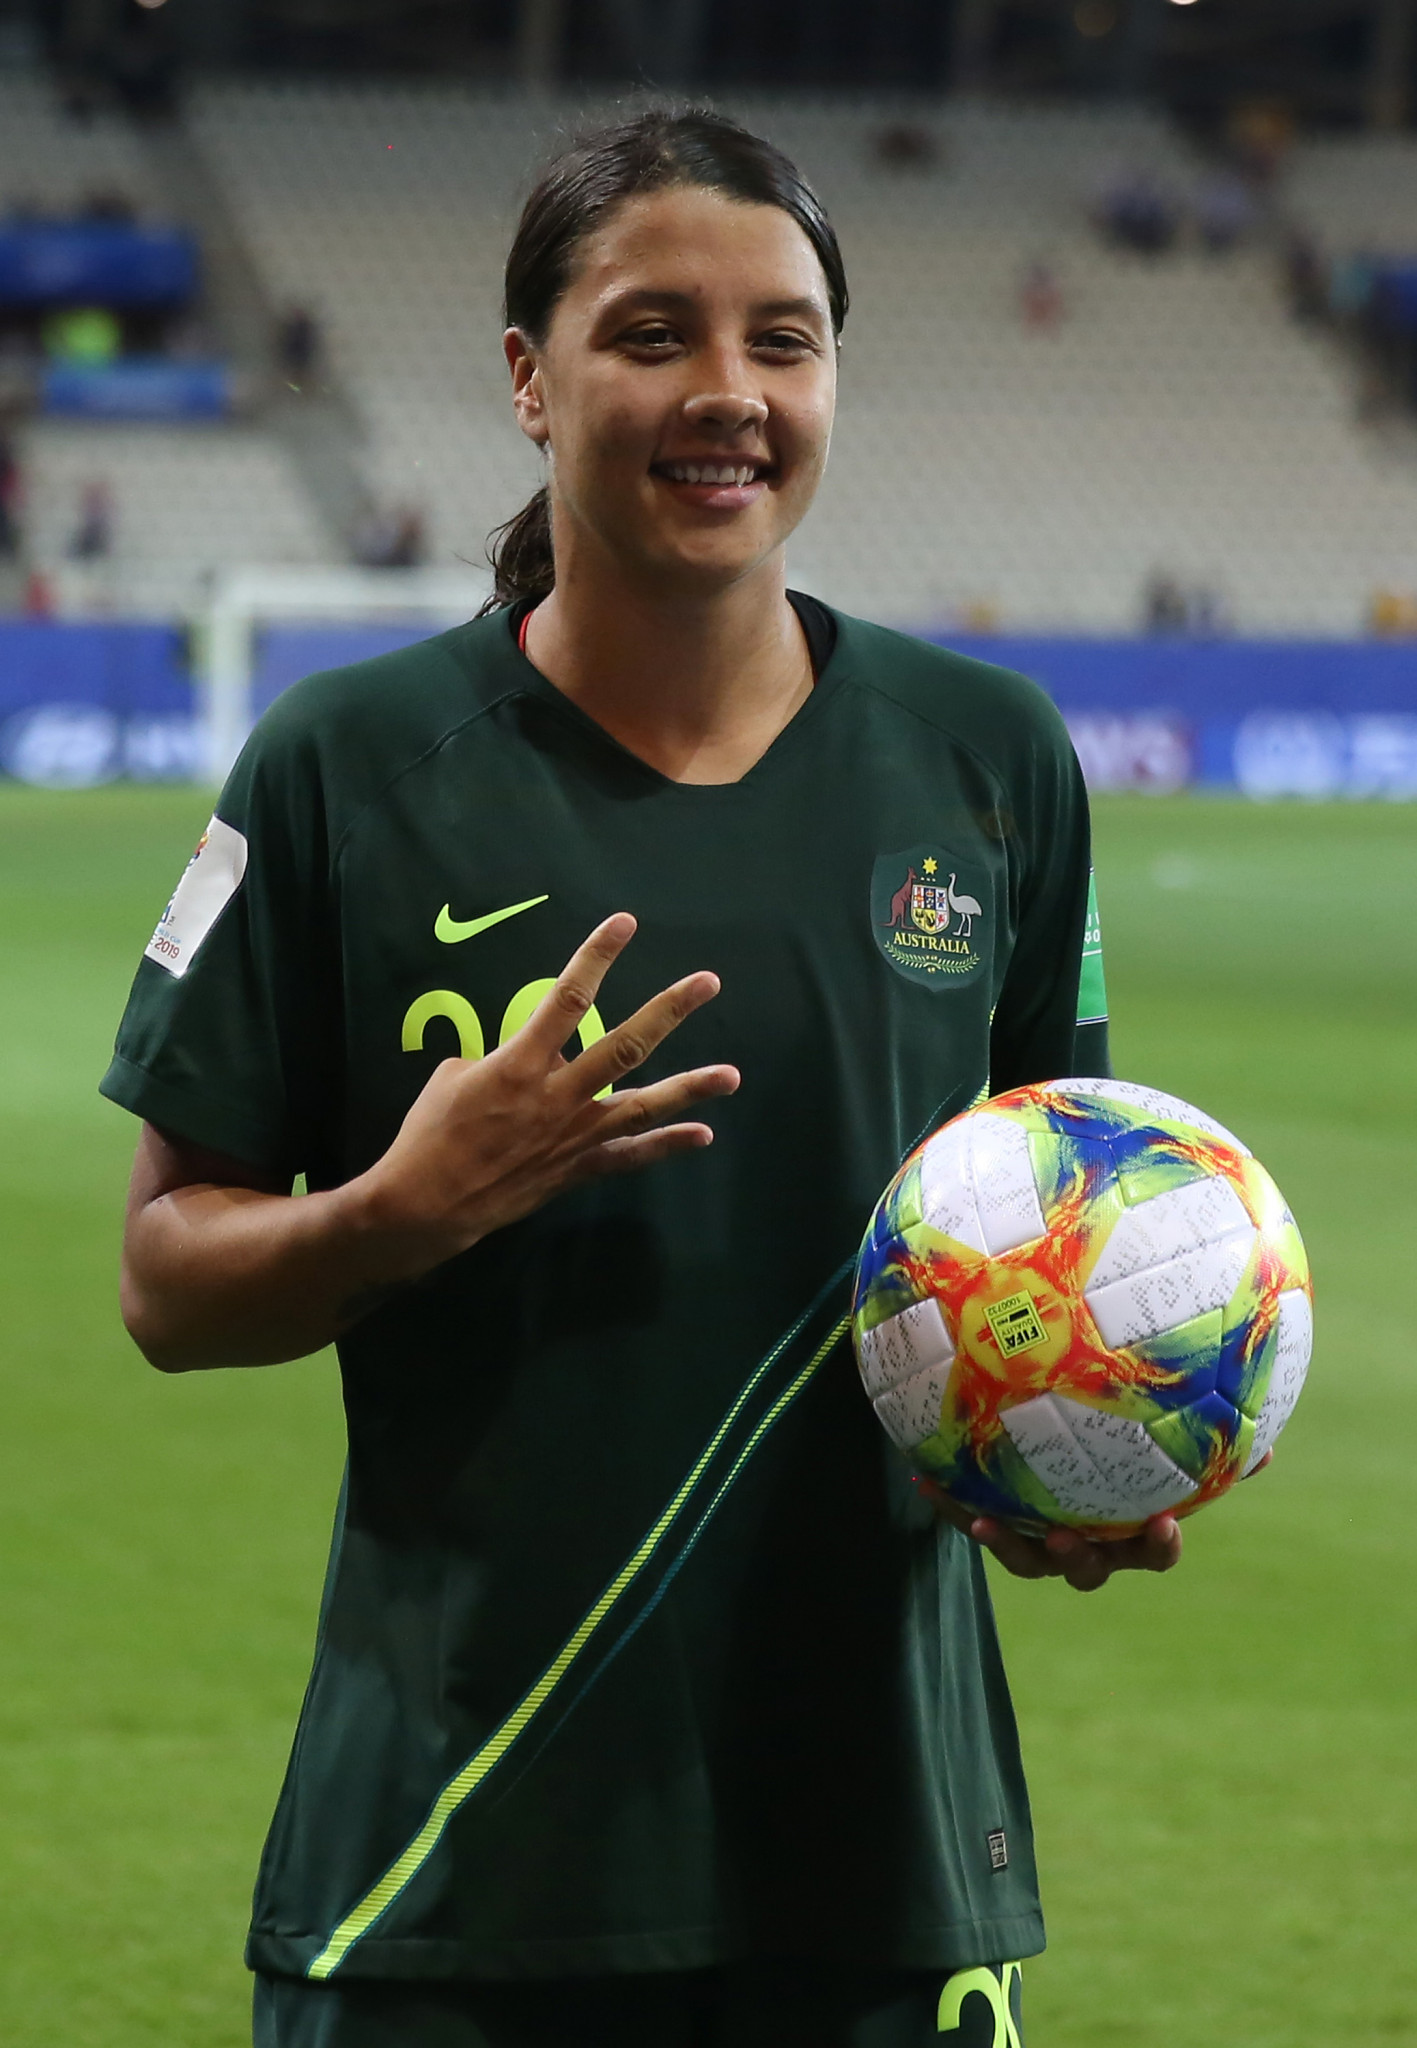 Australia's Sam Kerr with the match ball after scoring four goals against Jamaica ©Getty Images